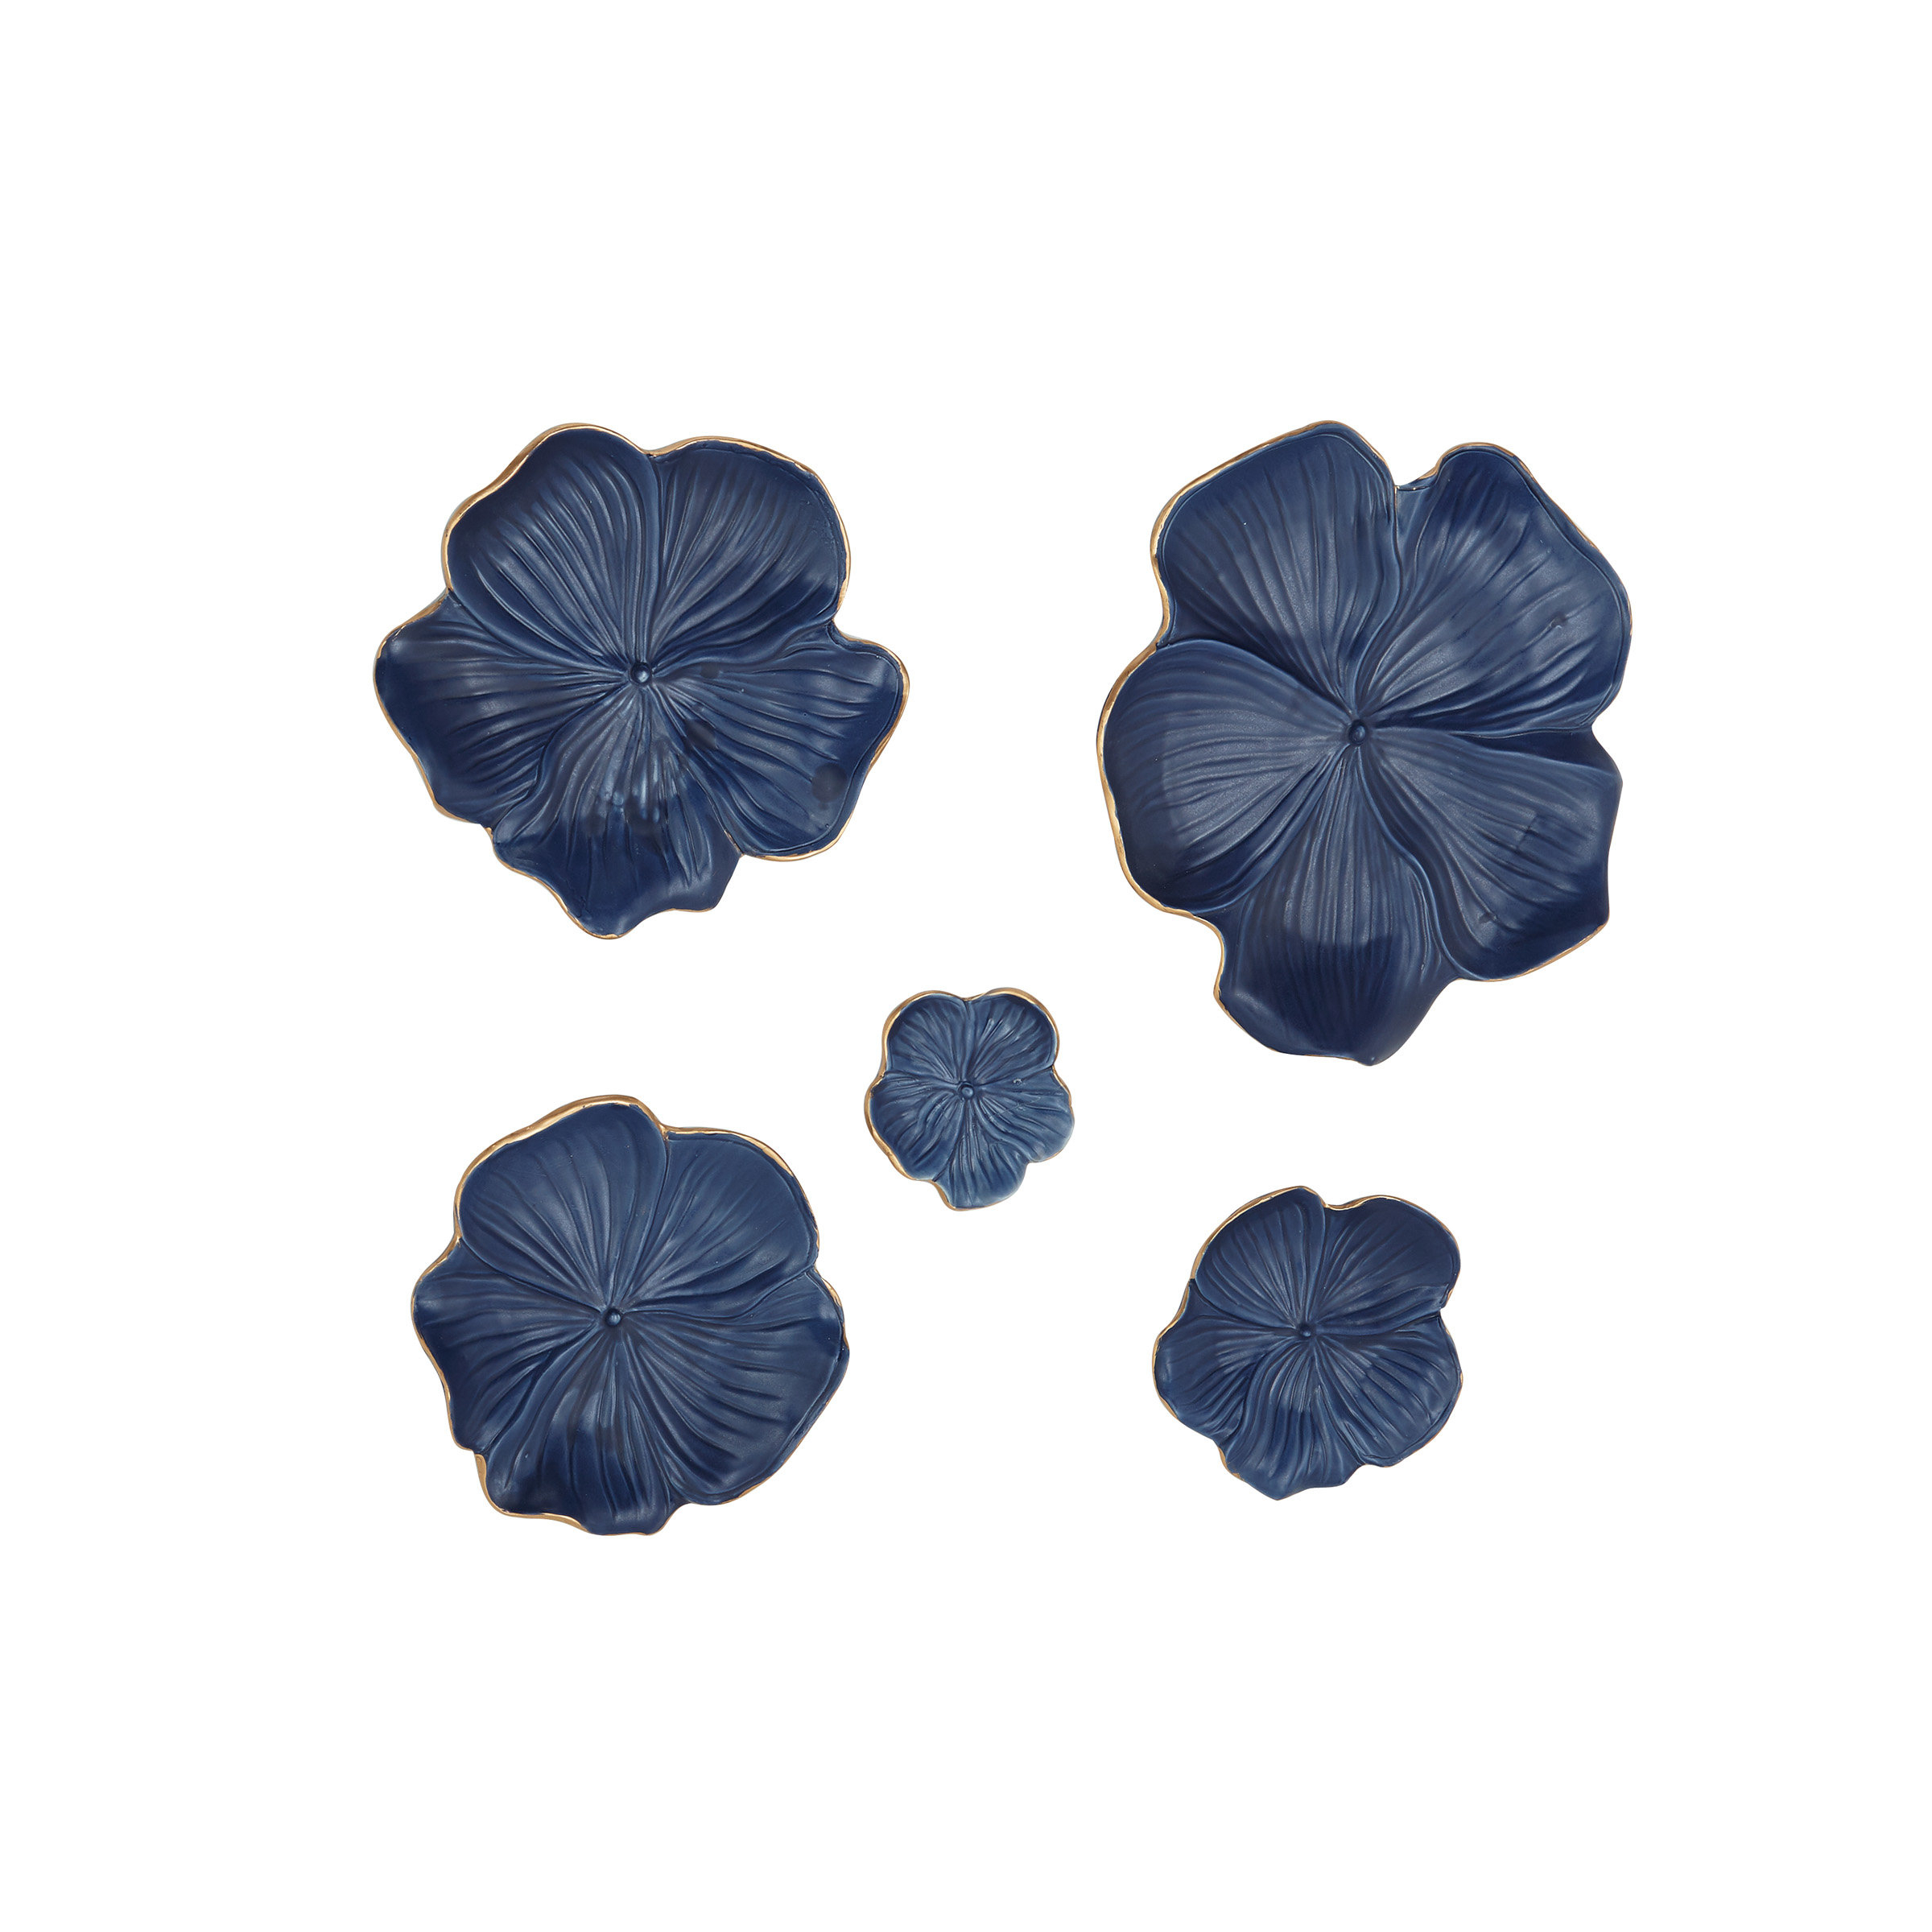 Bellefonte 5 Piece Ceramic Floral Wall Decor Set regarding Mariposa 9 Piece Wall Decor (Image 5 of 30)